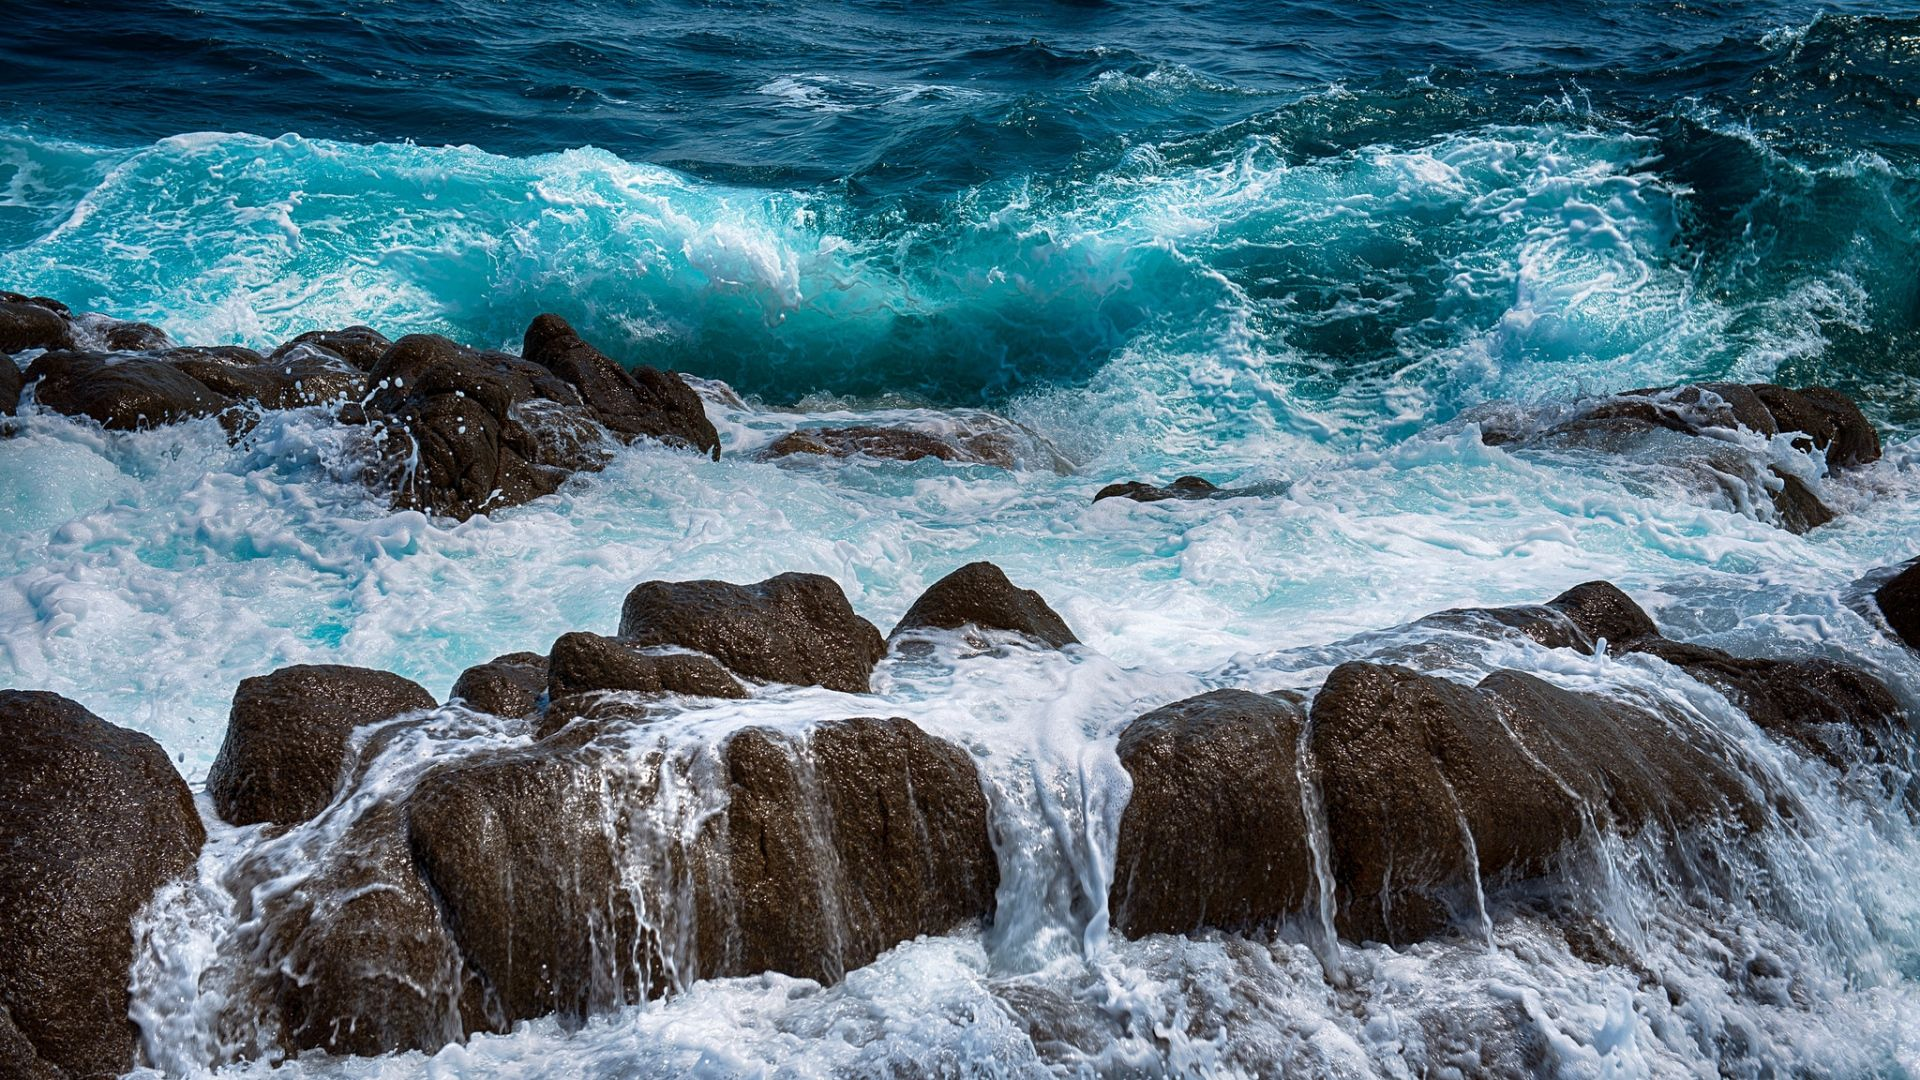 Download Wallpaper Sea Rocks Spray Surf Foam Full HD